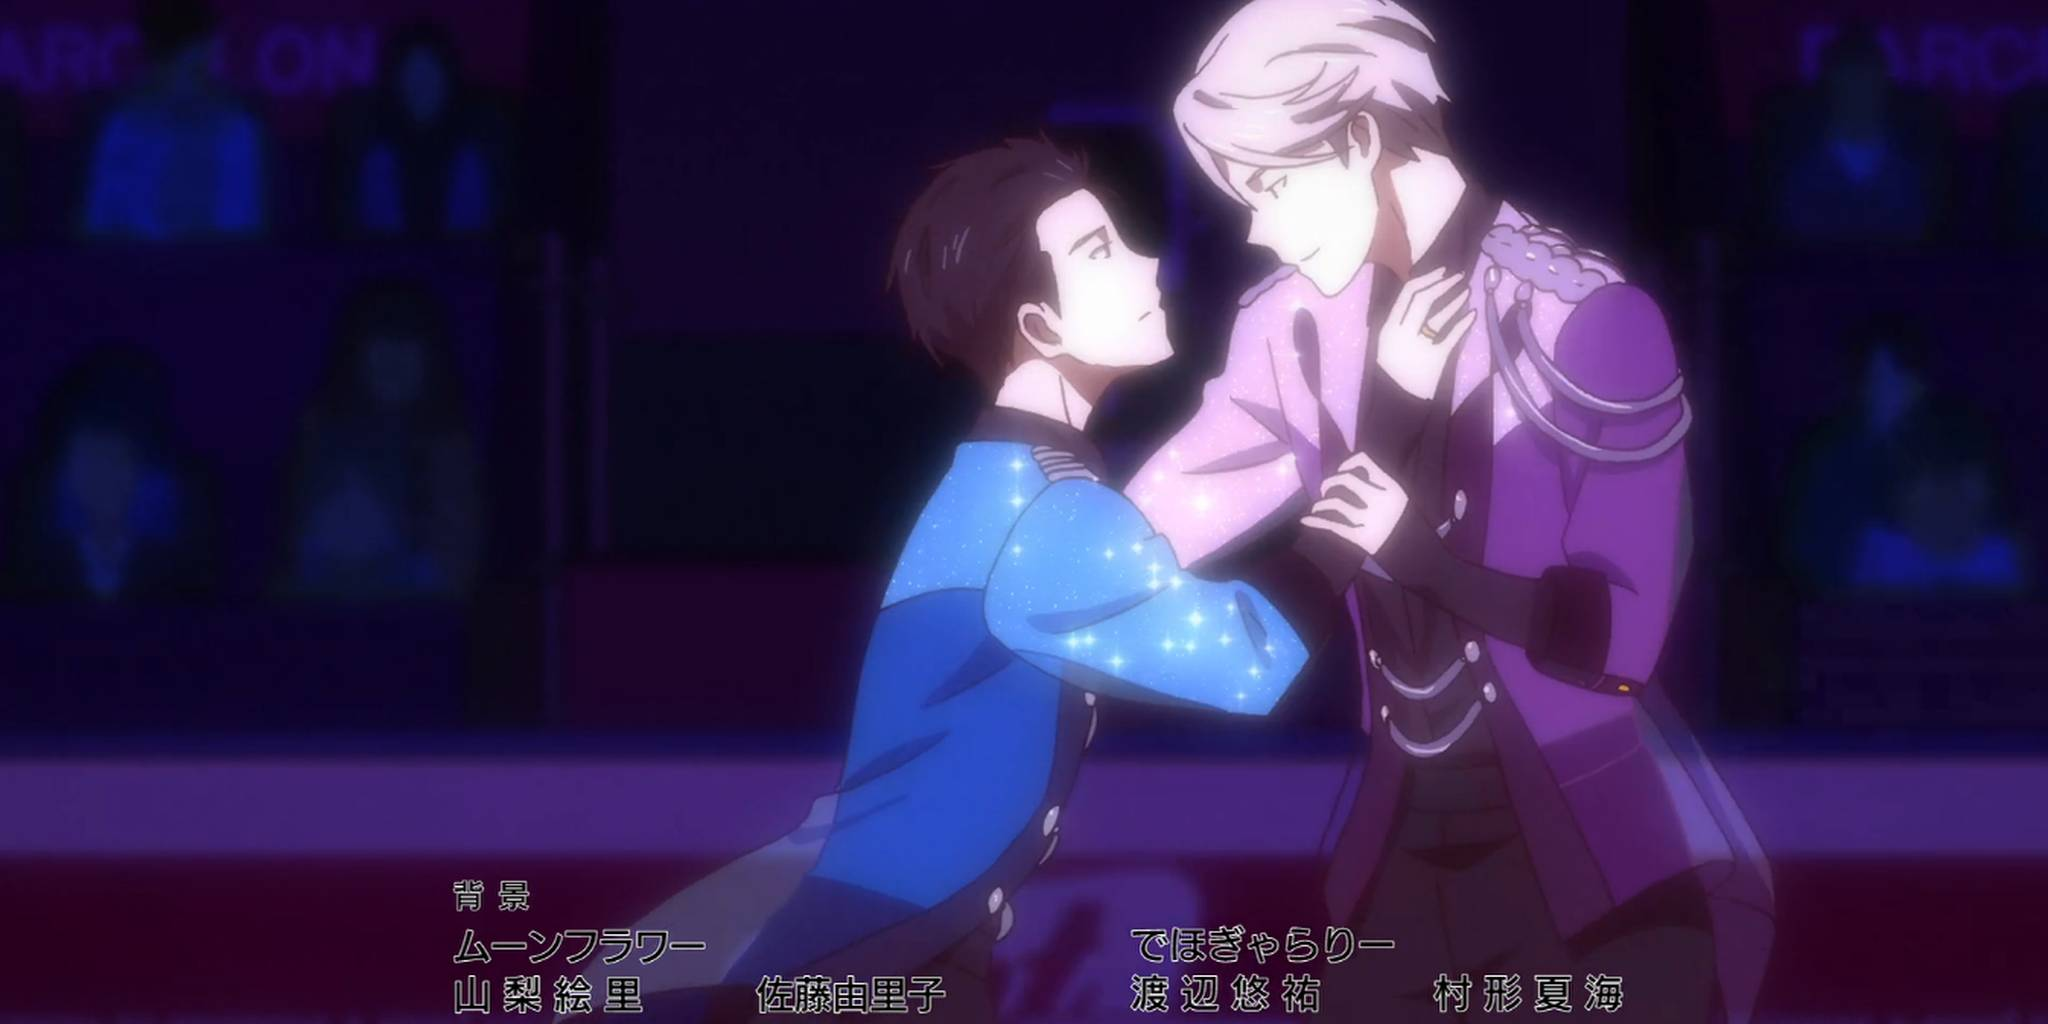 Cute Lovable Couple Wallpapers Yuri On Ice Ended Its First Season On A Perfect Note